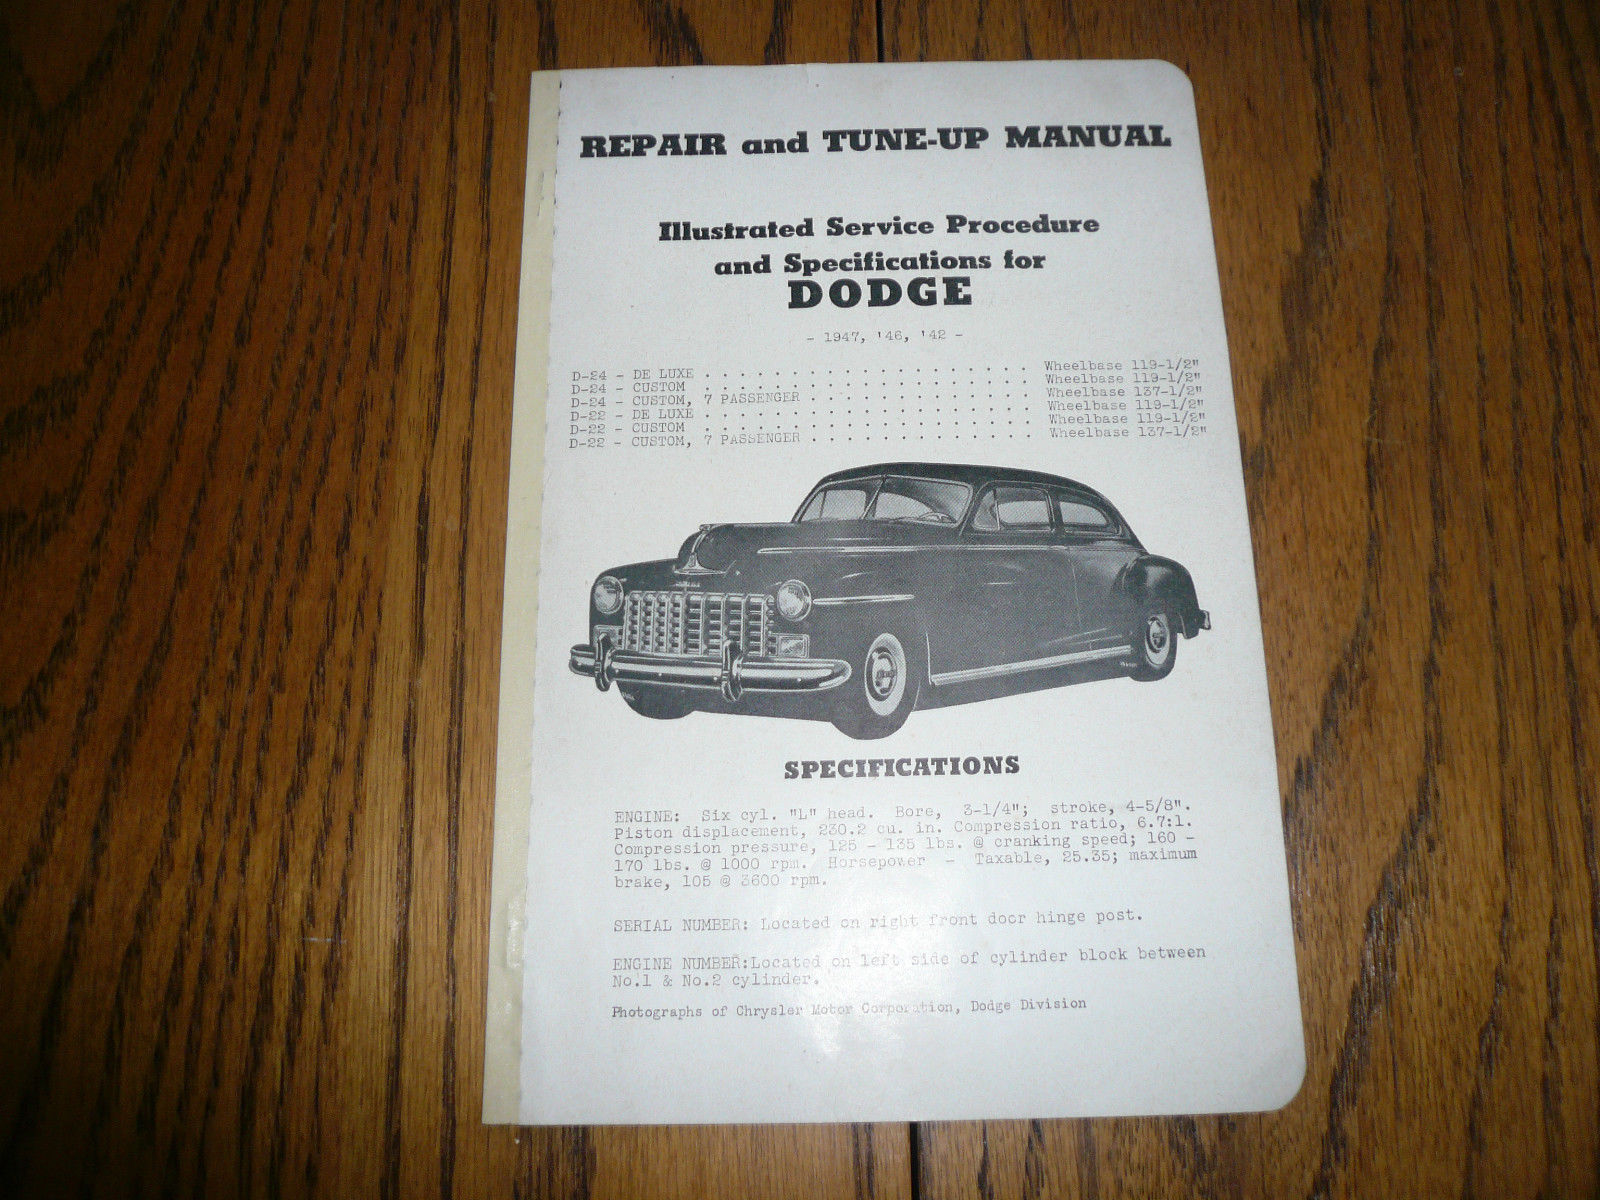 1947 1946 1942 Dodge Repair & Tune-Up Manual - Vintage